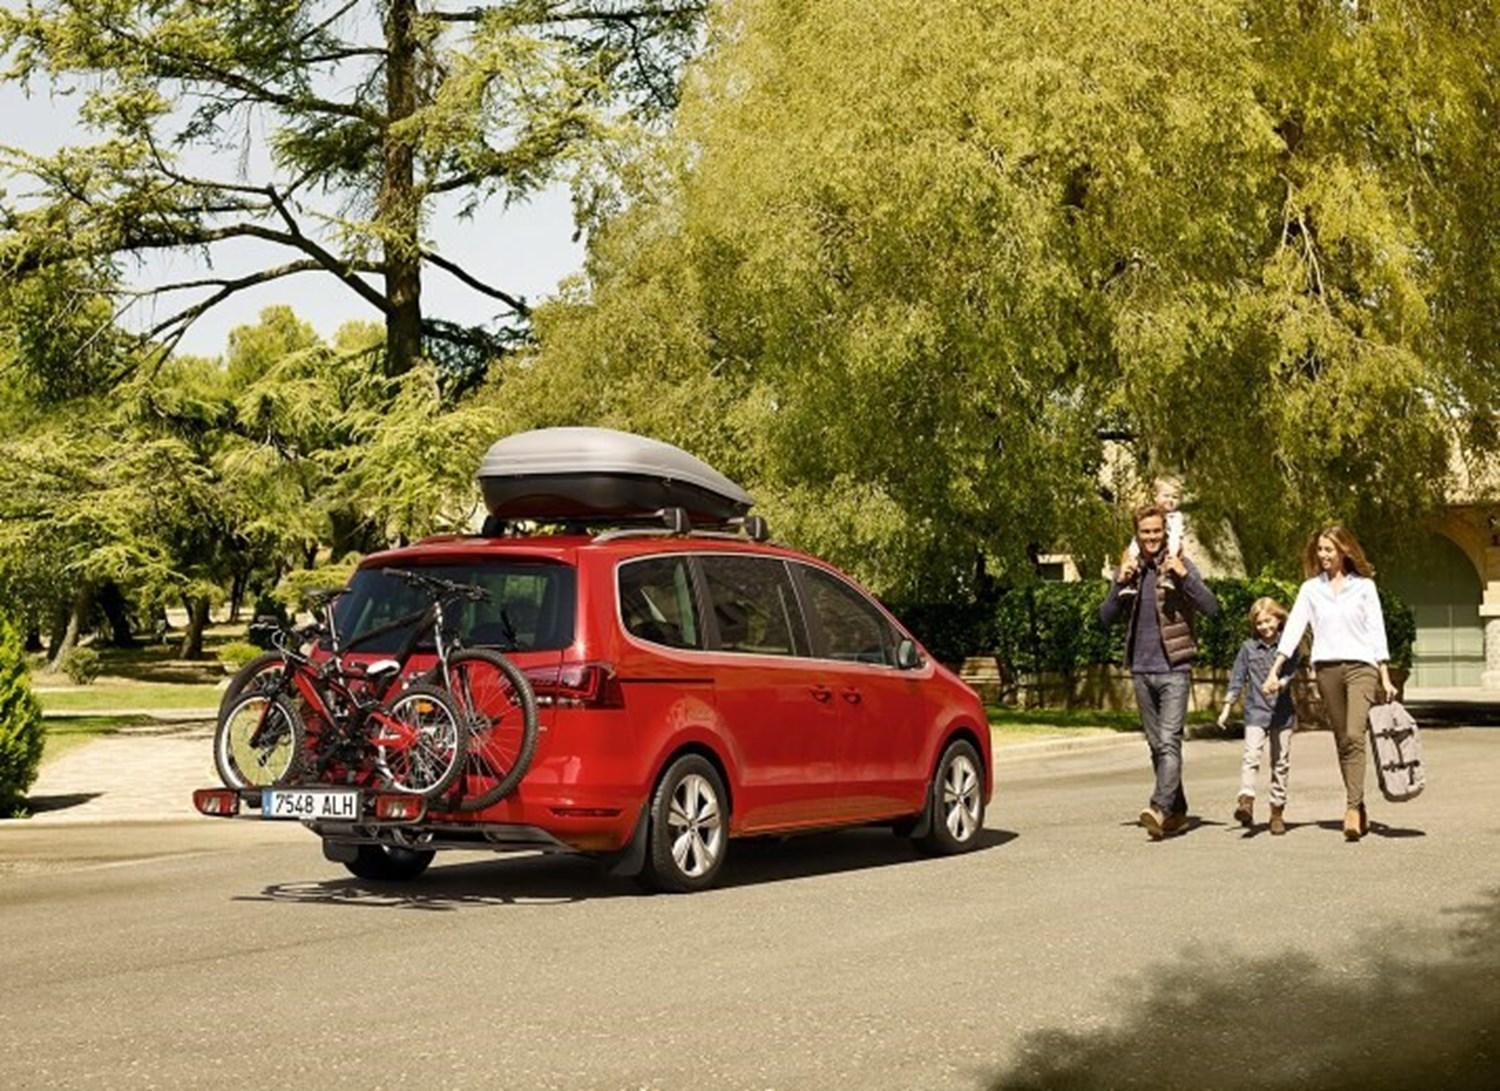 Red SEAT Alhambra with bike rack and roof rack